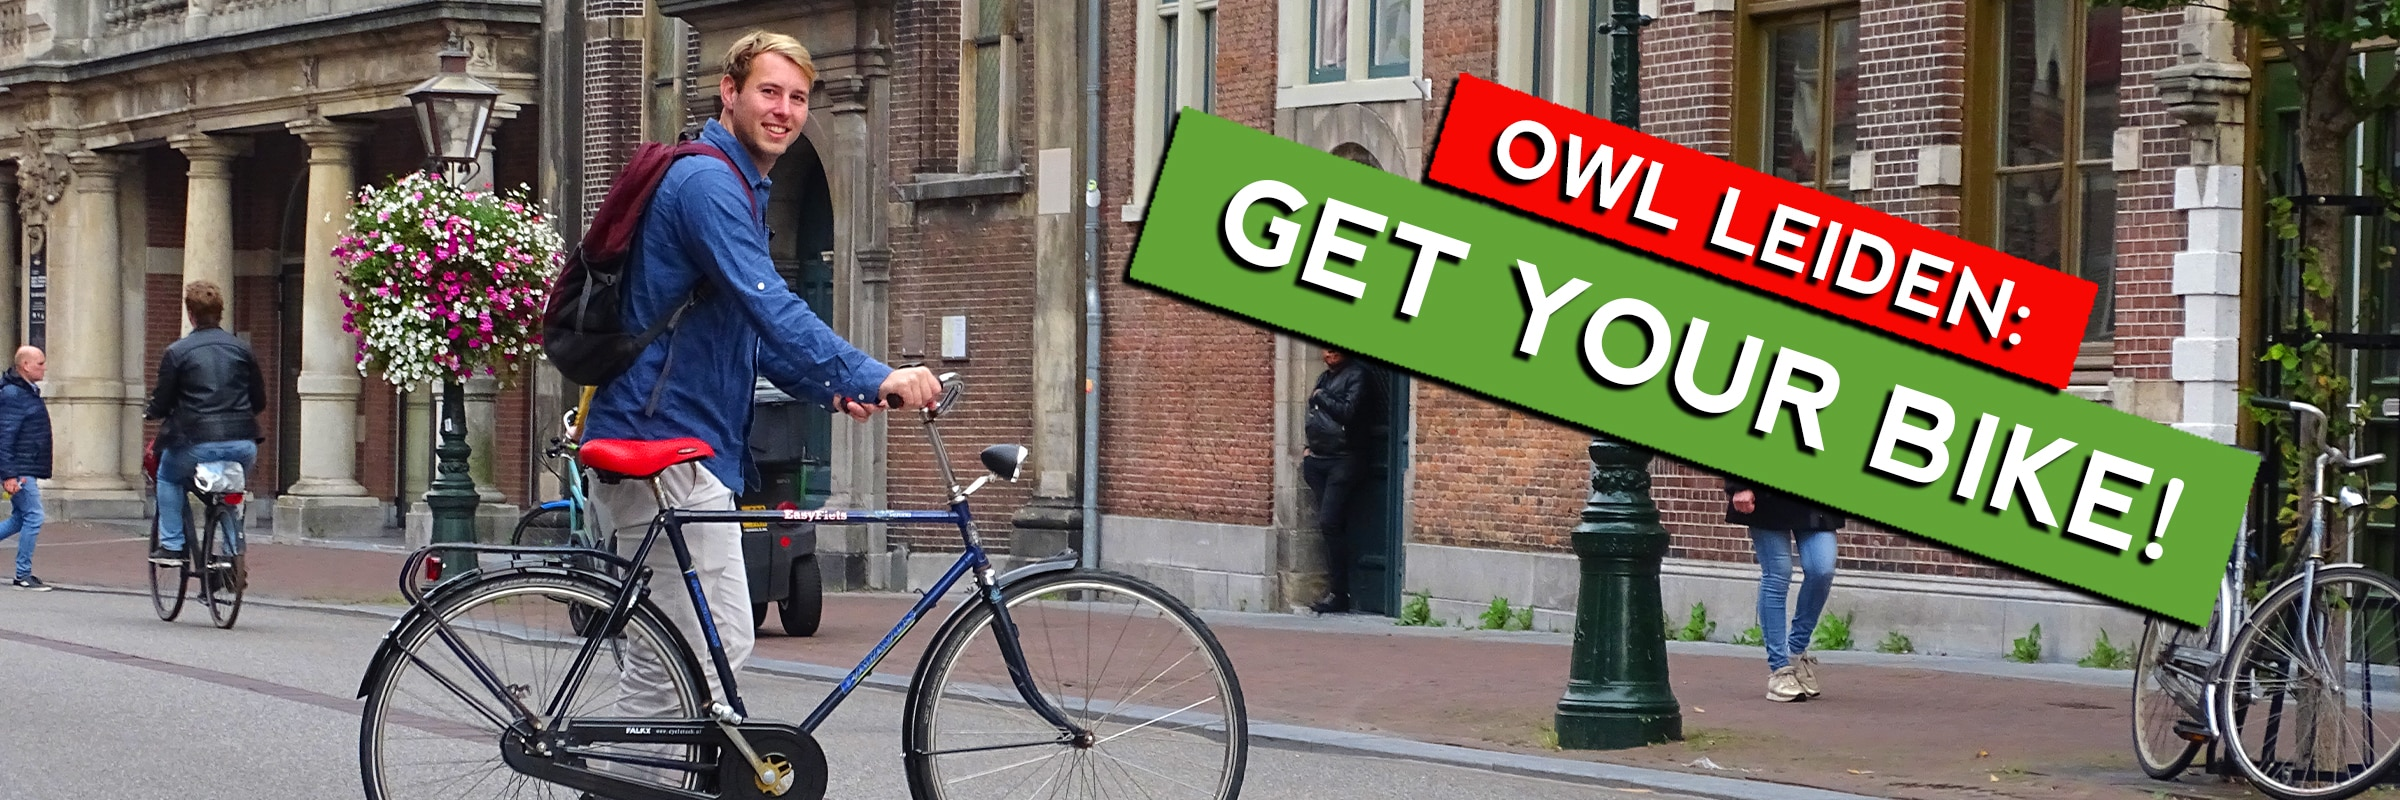 Get a bike in Leiden rent or lease it for a monthly-fee including service and maintenance. Choose your fiets at EasyFiets during the OWL Leiden